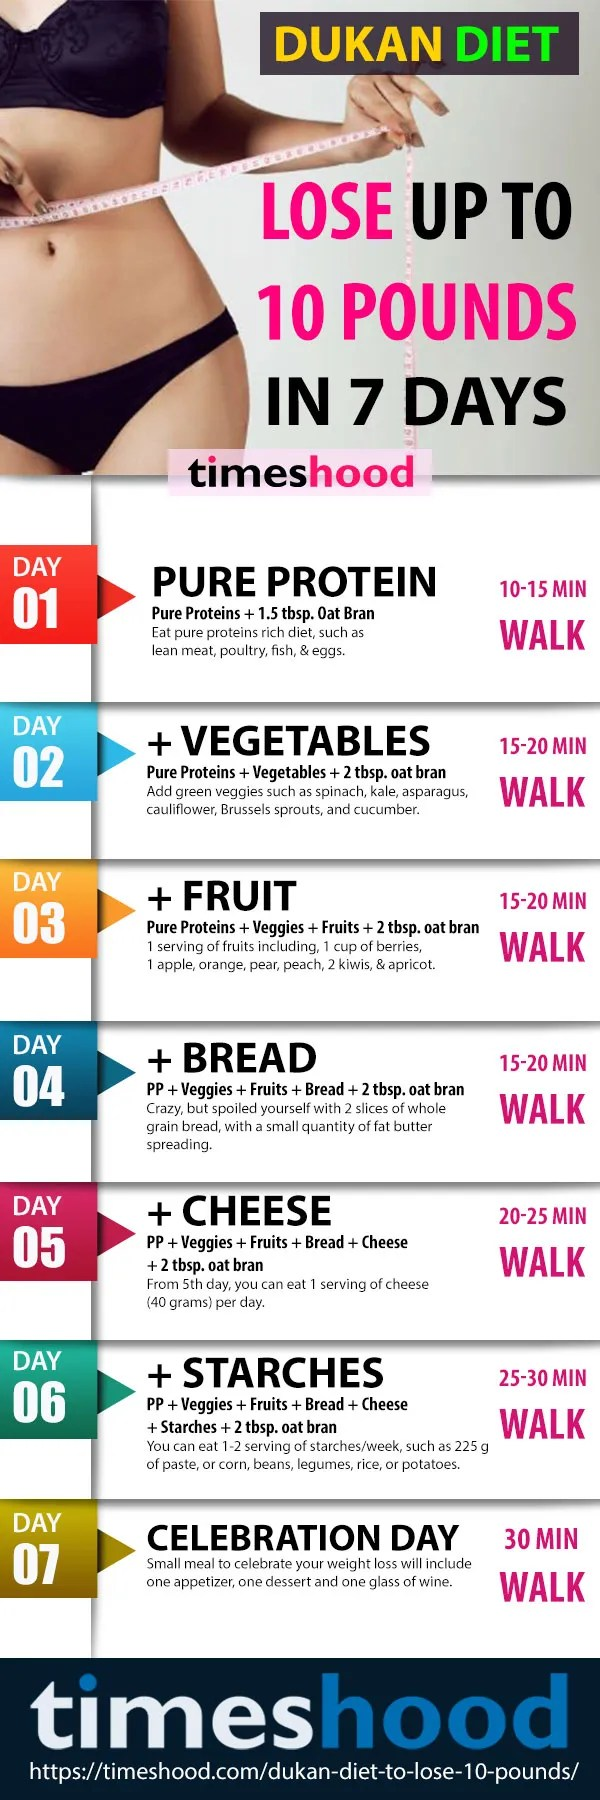 dukan-diet-to-lose-weight Fast Weight Loss Diet: Dukan Diet to Lose 10 Pounds in 7 Days